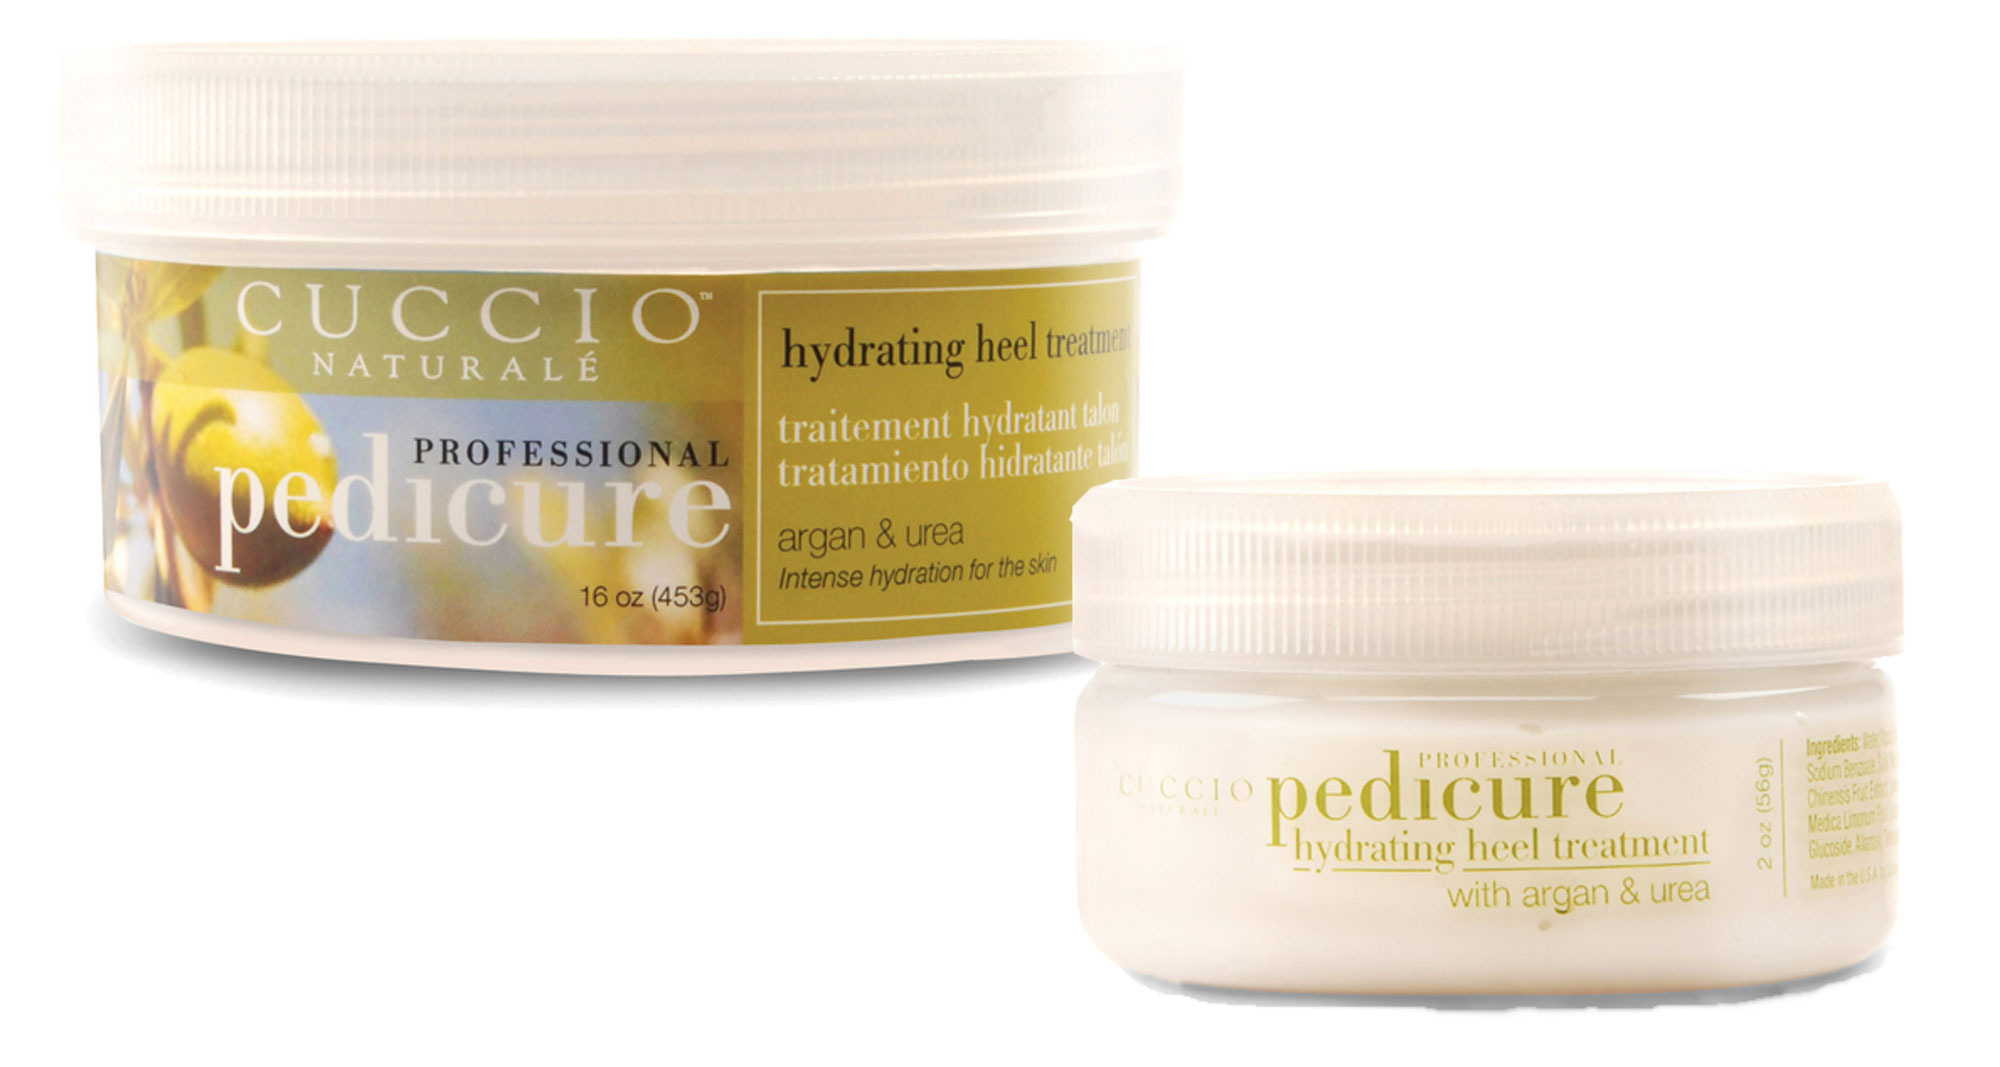 Cuccio Naturale's Hydrating Heel Treatment is available in a 16 oz professional size and a 2 oz size that is ideal for retail. Scents include original and coconut.